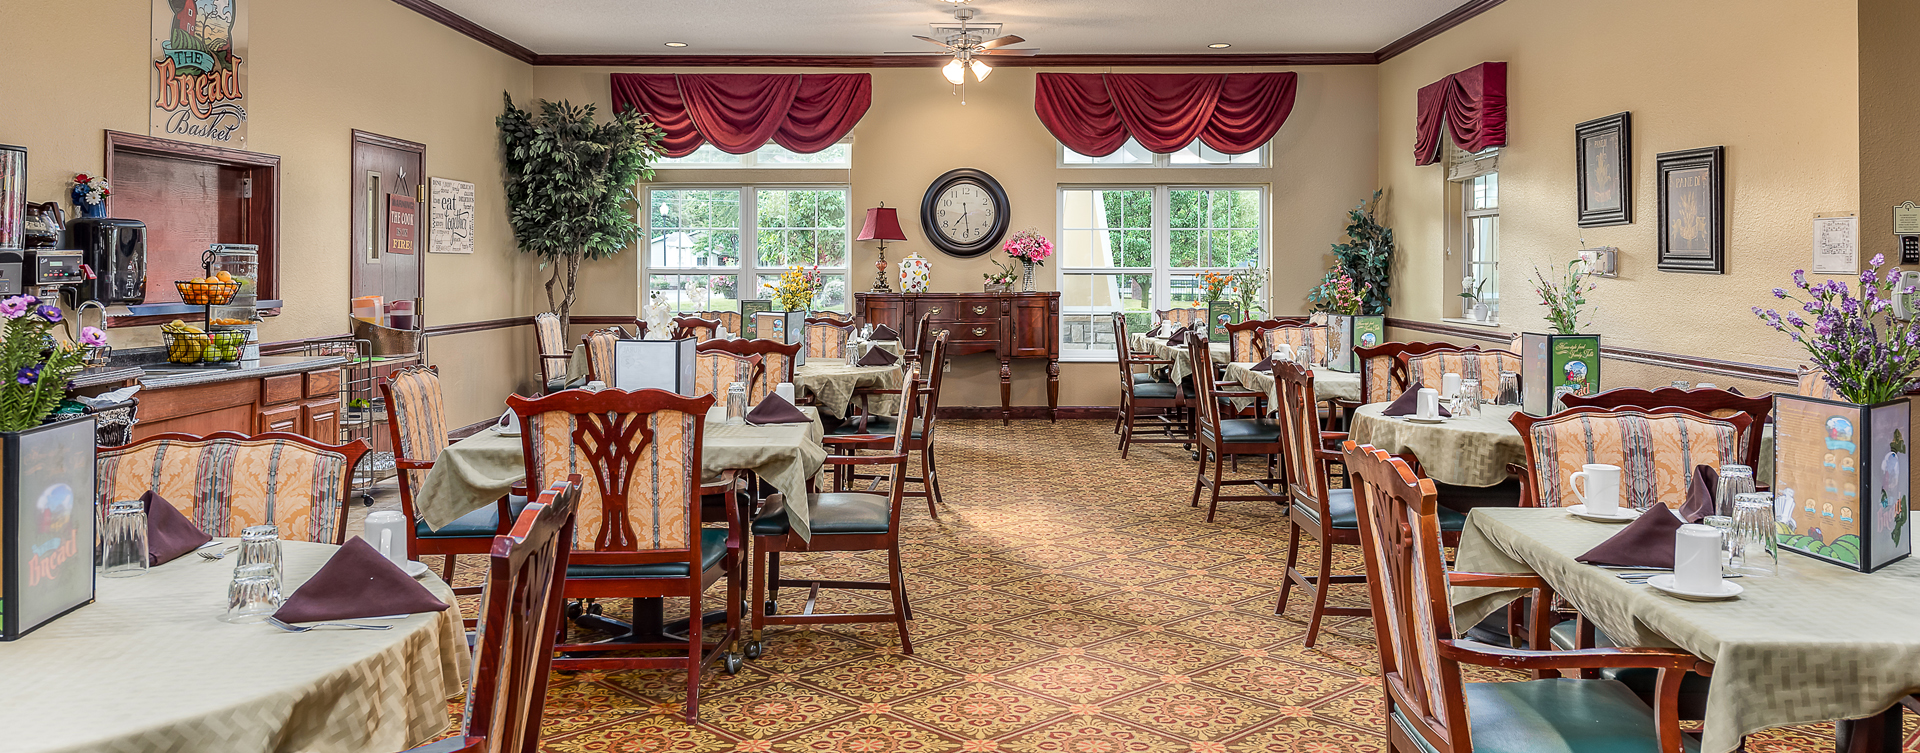 Enjoy restaurant -style meals served three times a day in our dining room at Bickford of Saginaw Township